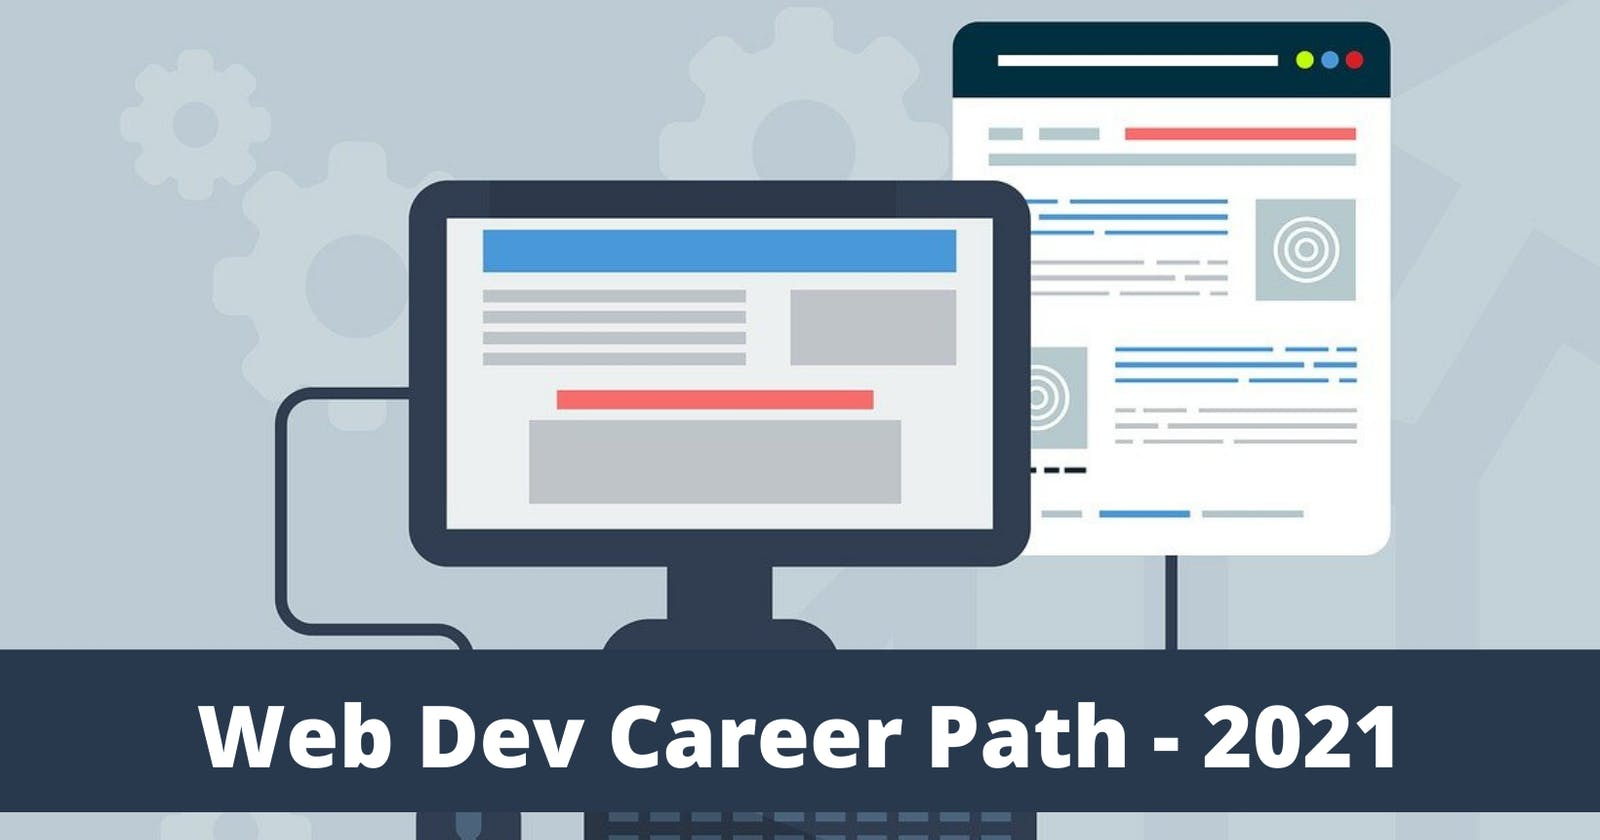 Starting Web Development in 2021: The Complete Guide (with Resources)